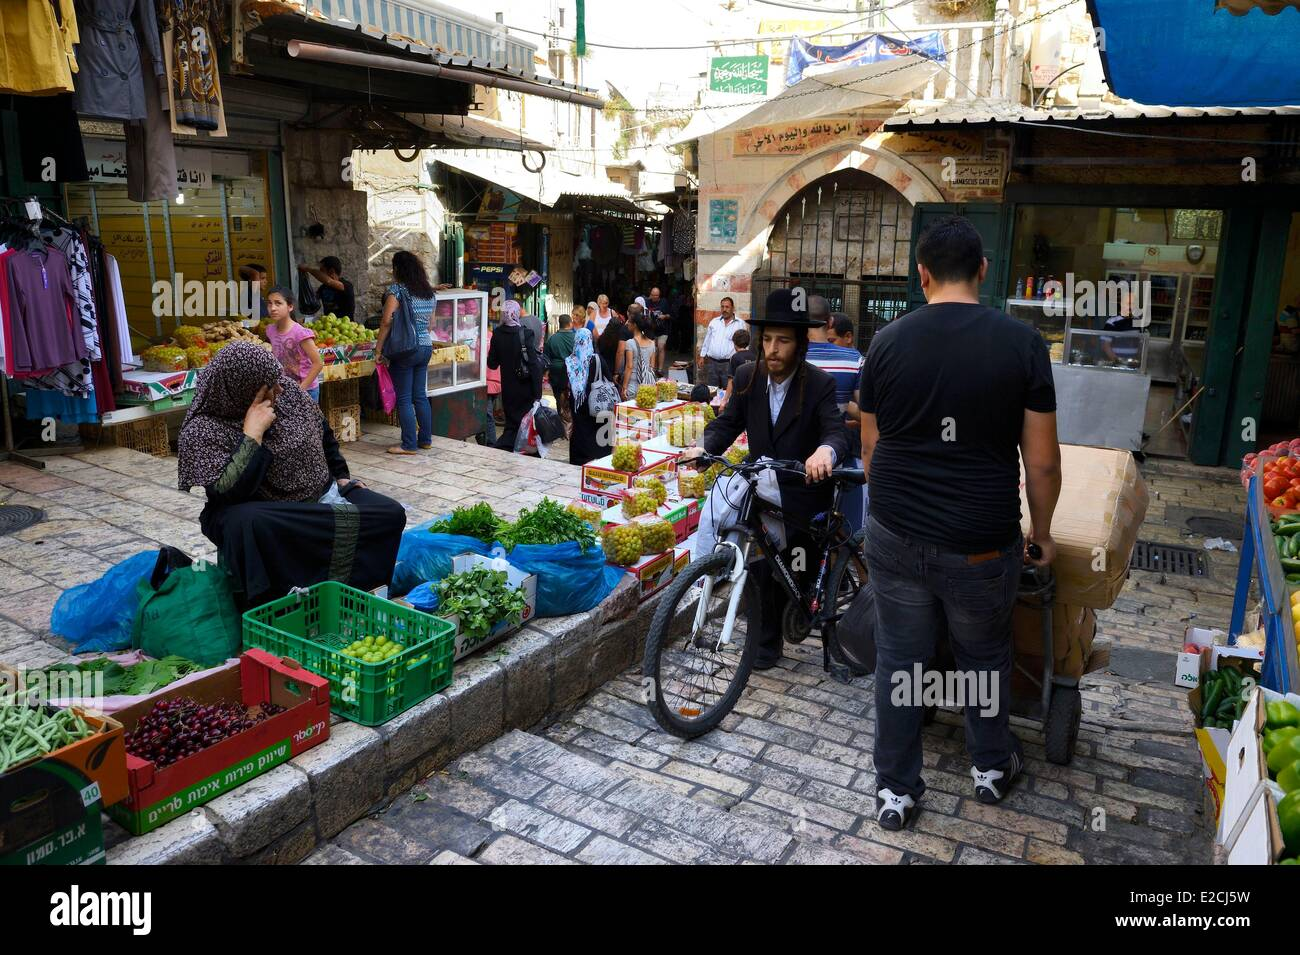 Israel, Jerusalem, holy city, old town listed as World Heritage by UNESCO, cross roads between Christian and Muslim - Stock Image